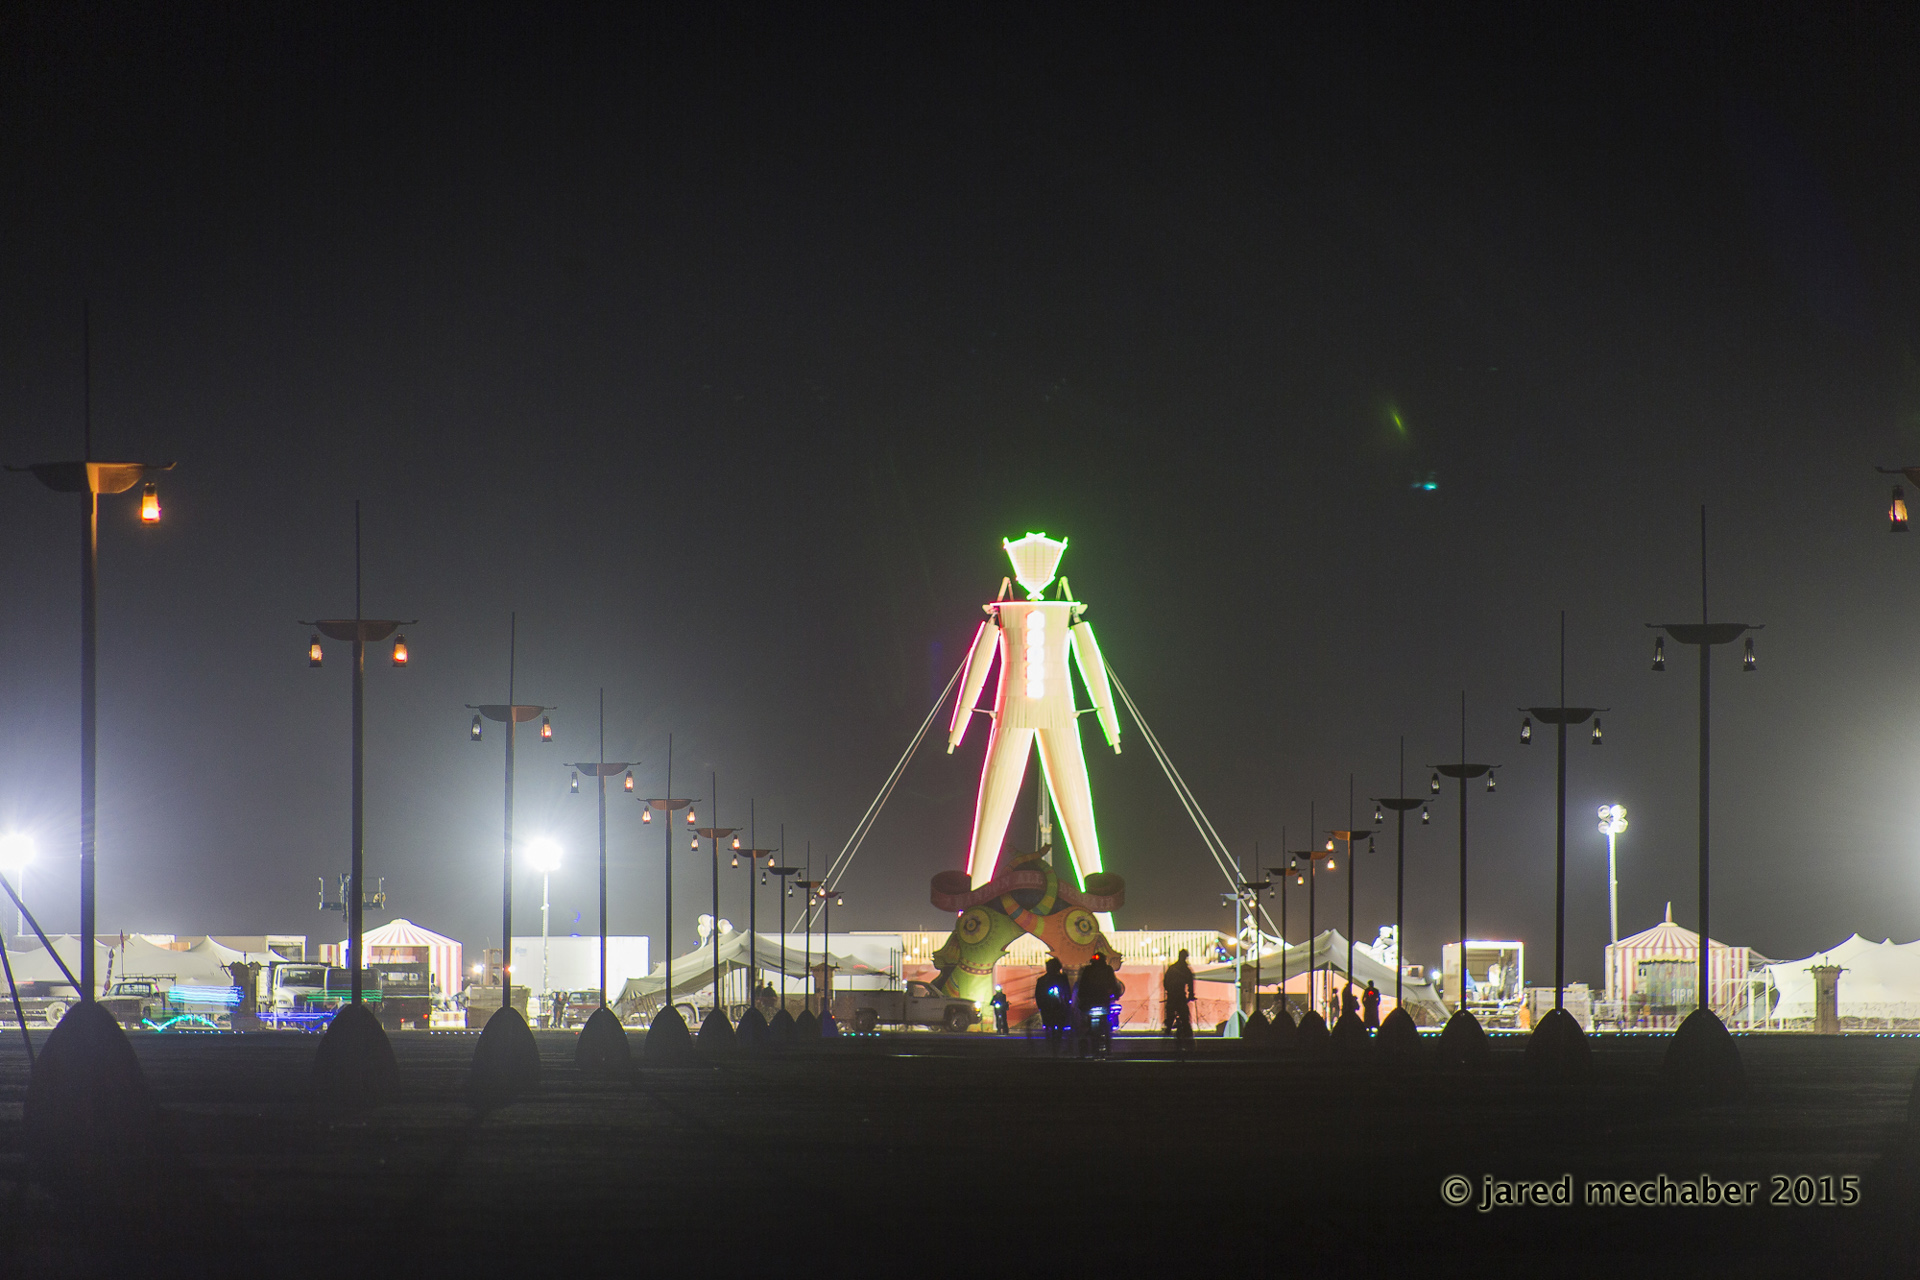 67_150902_Burningman_3969.JPG